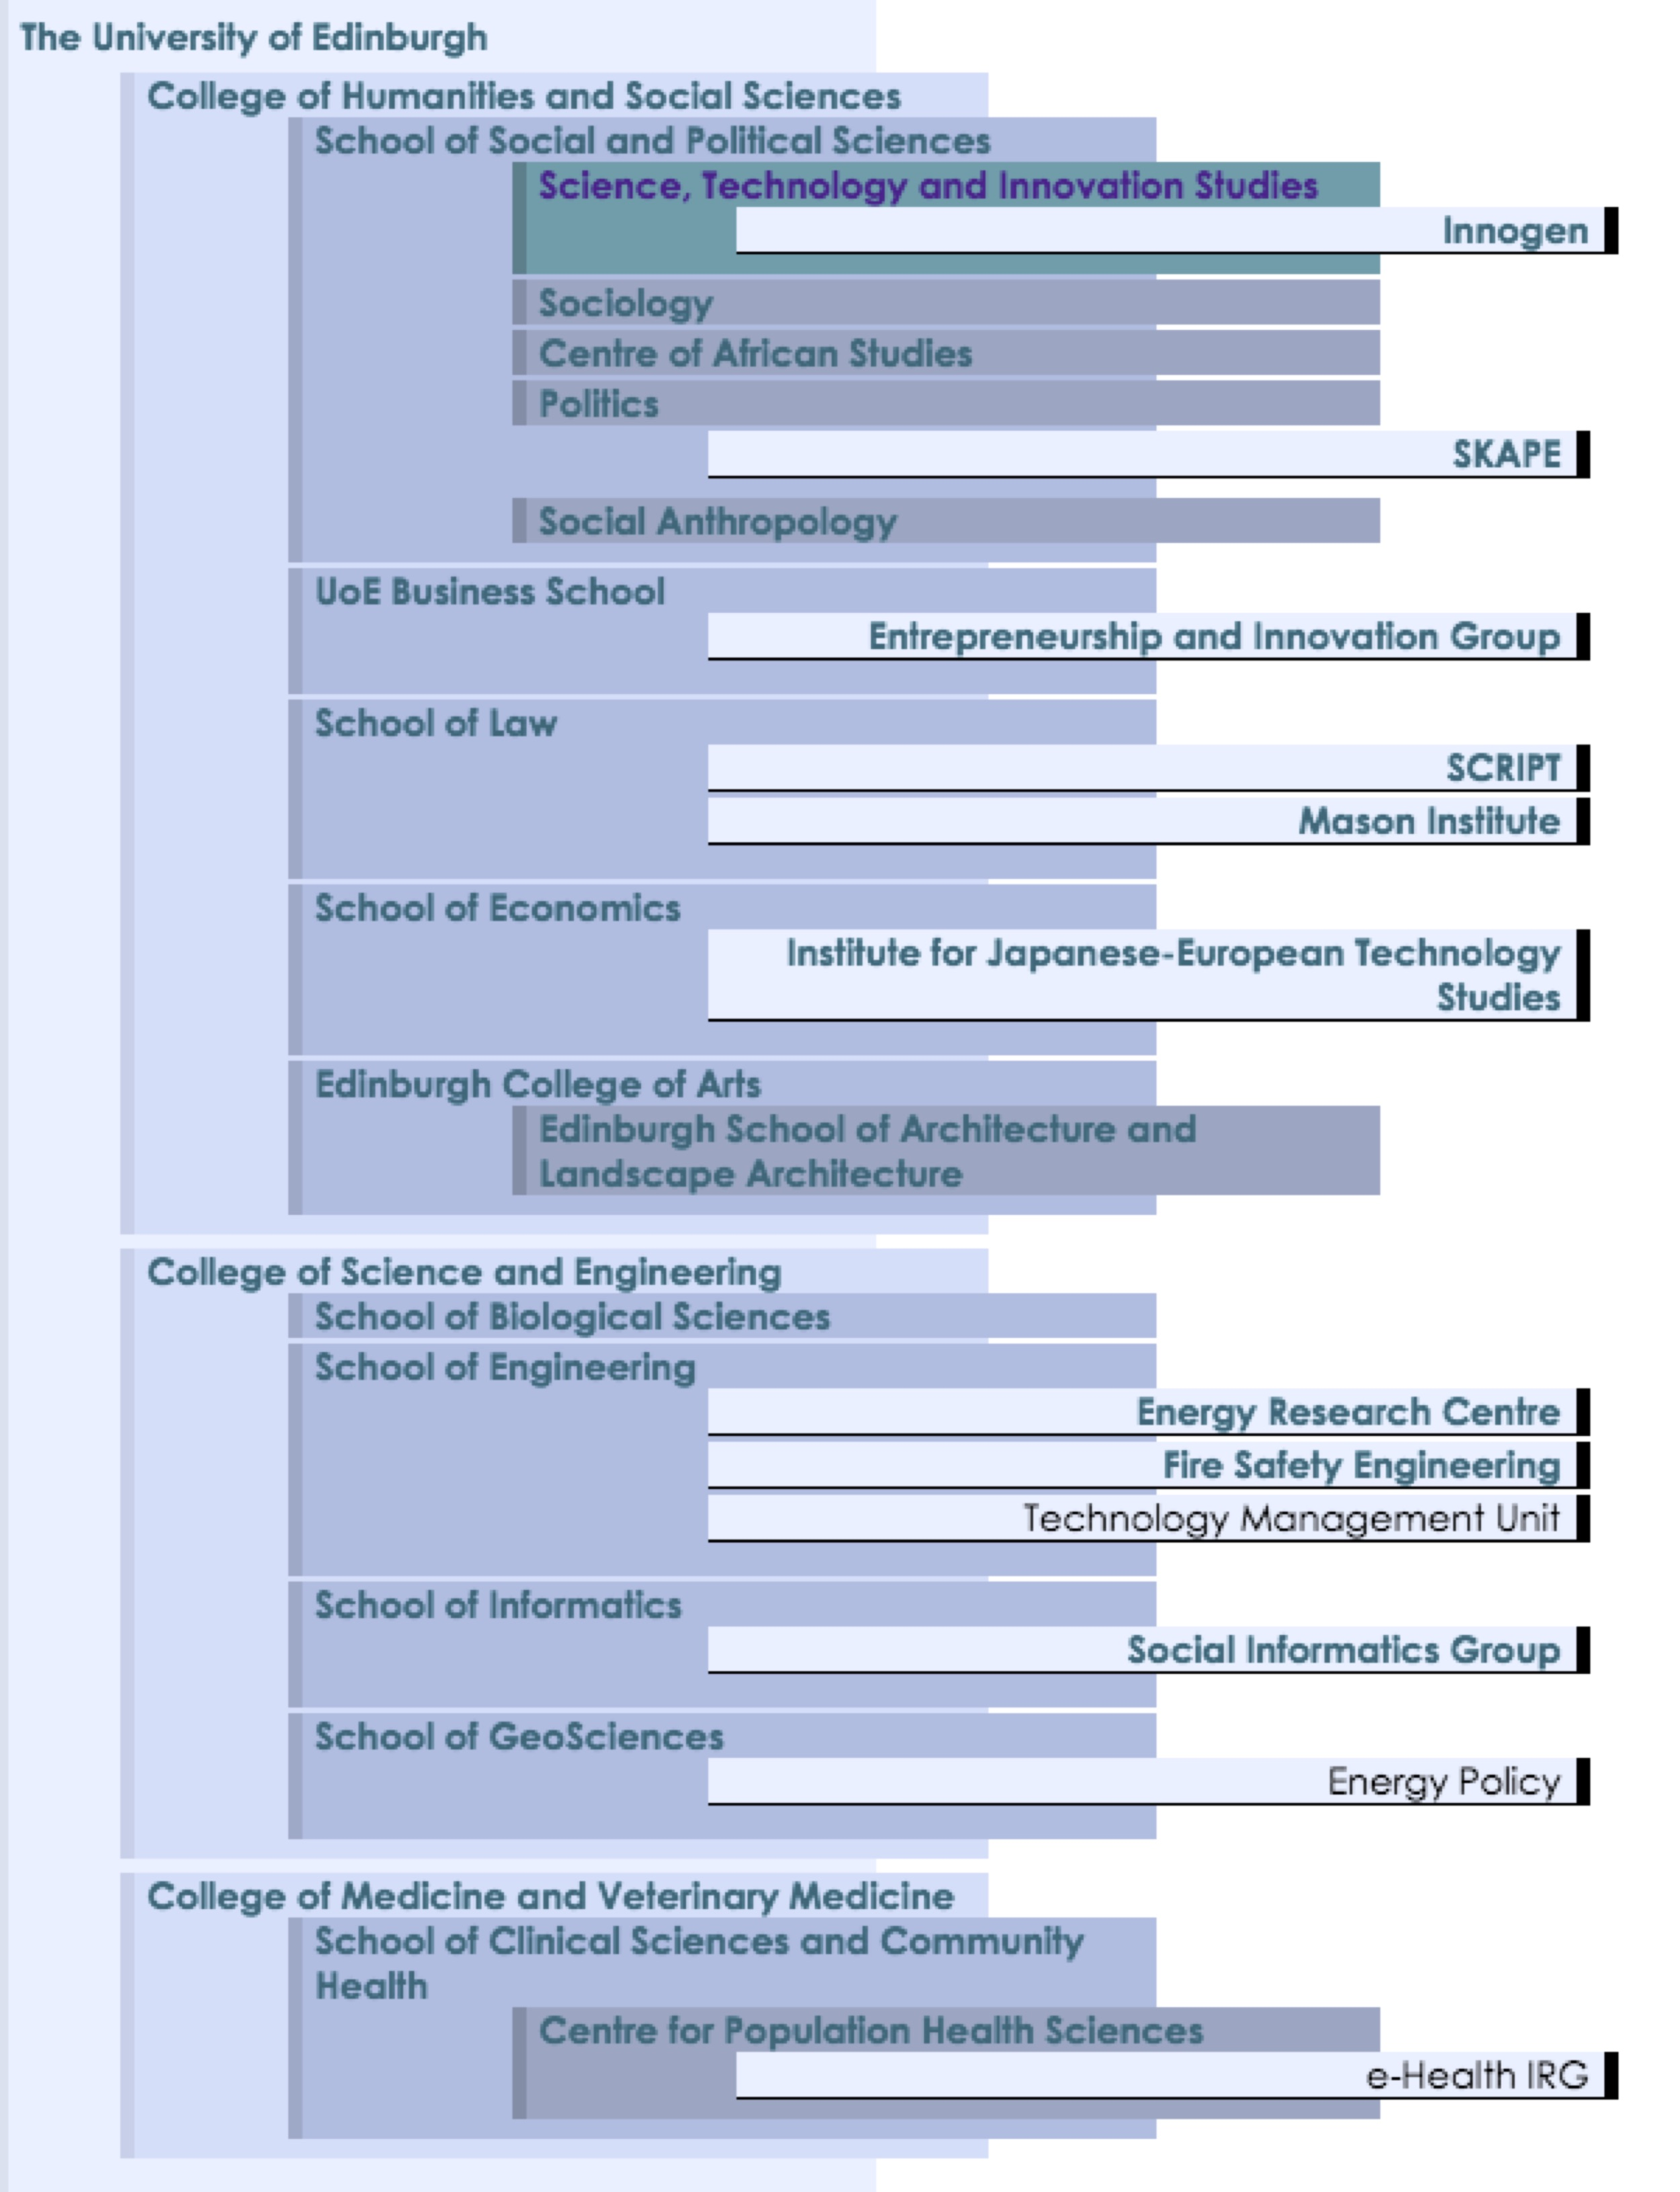 Figure 3: Science, Technology and Innovation Studies: Interdisciplinary Engagements across The University of Edinburgh Courtesy of R. Williams